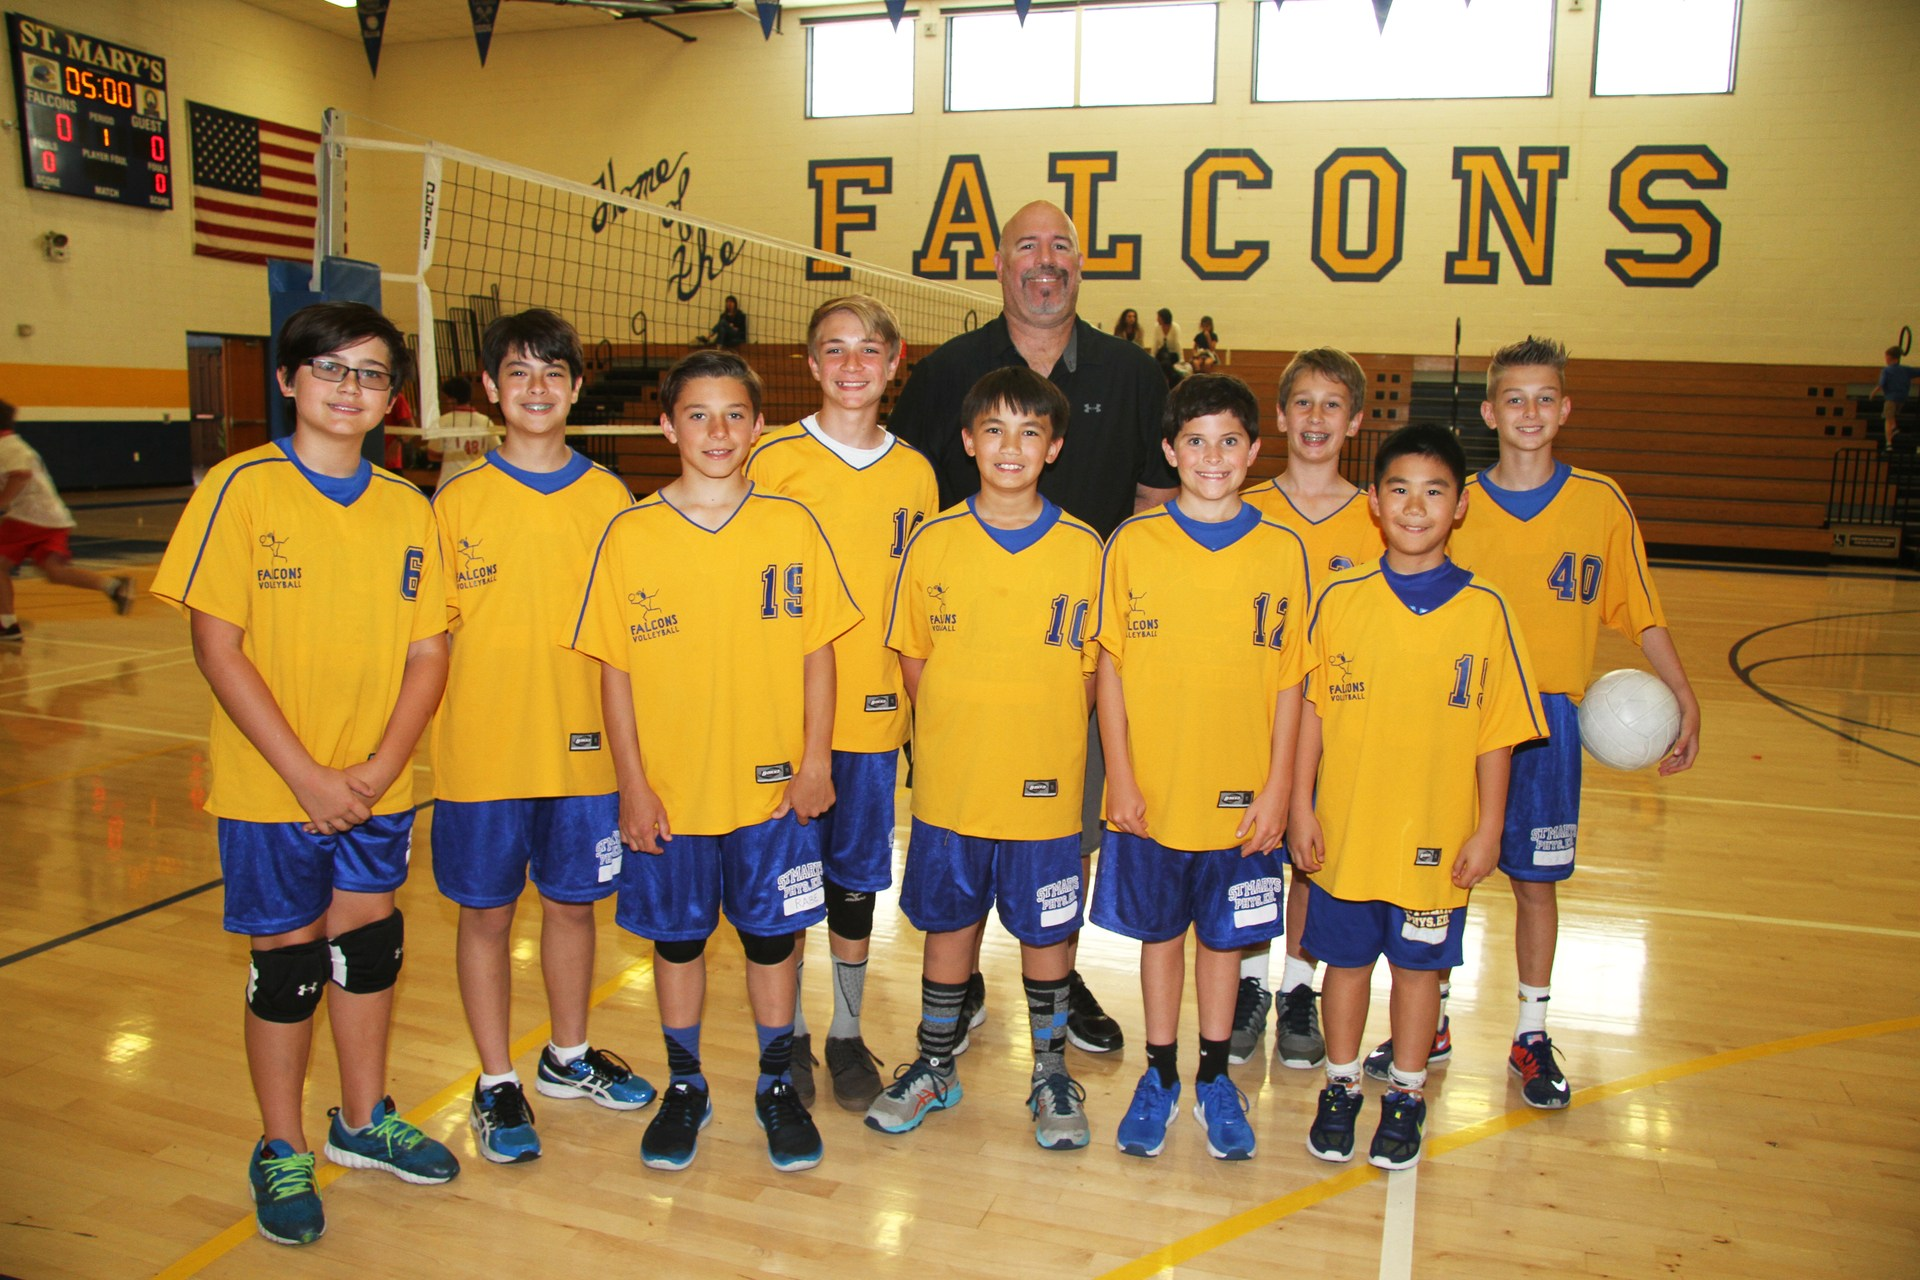 Canyon B boys' volleyball team pic